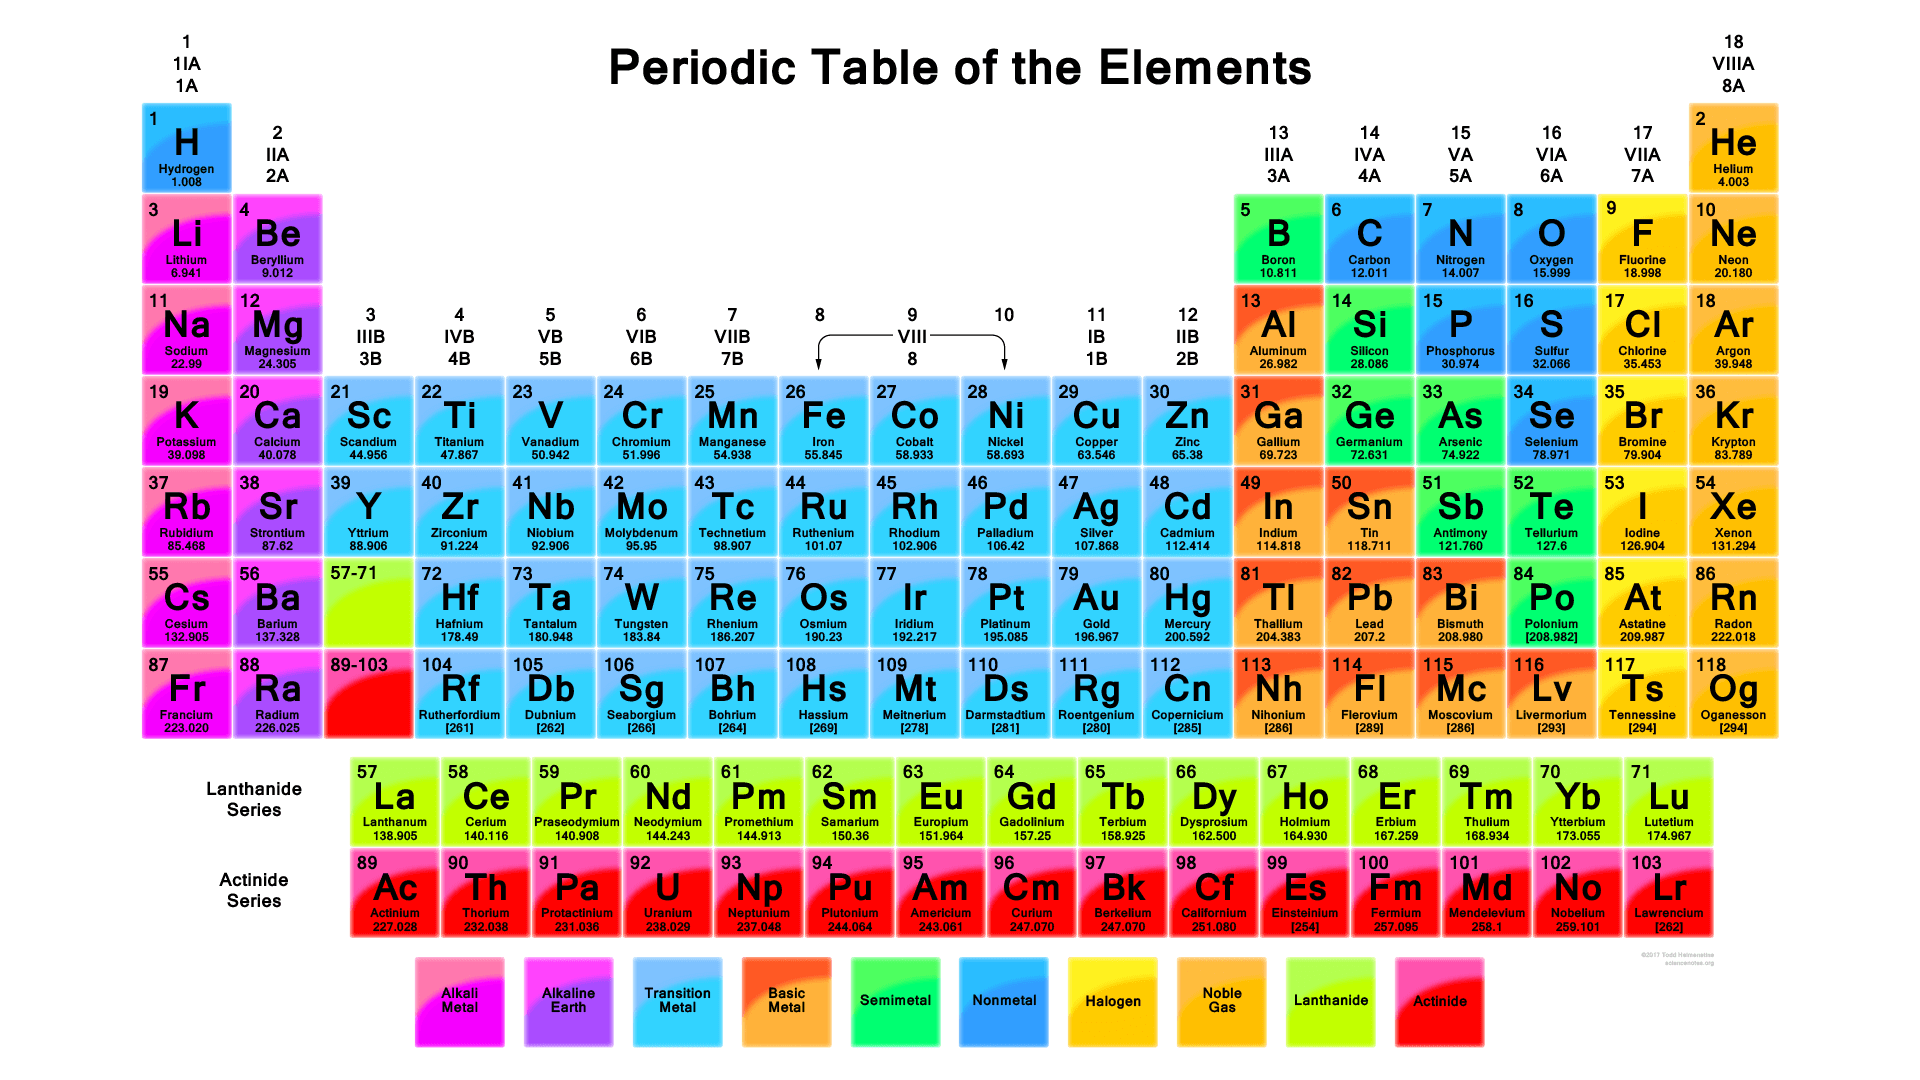 Hd wallpaper of periodic table vibrant color periodic table hd wallpaper of periodic table wallpaper 118 elements urtaz Choice Image